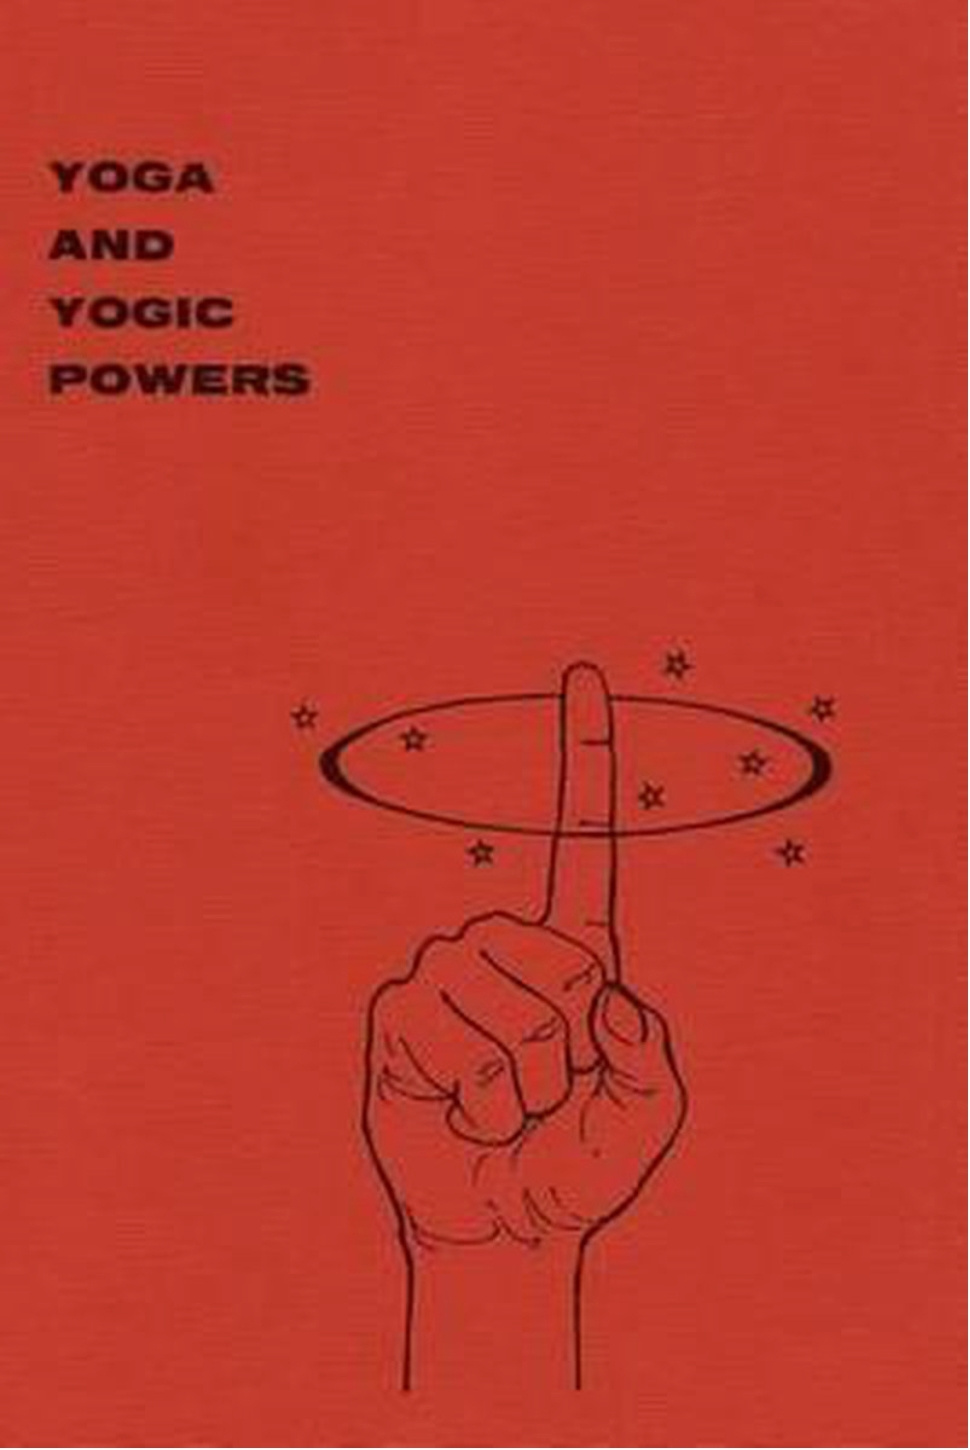 Yoga and yogic powers Yogi Gupta